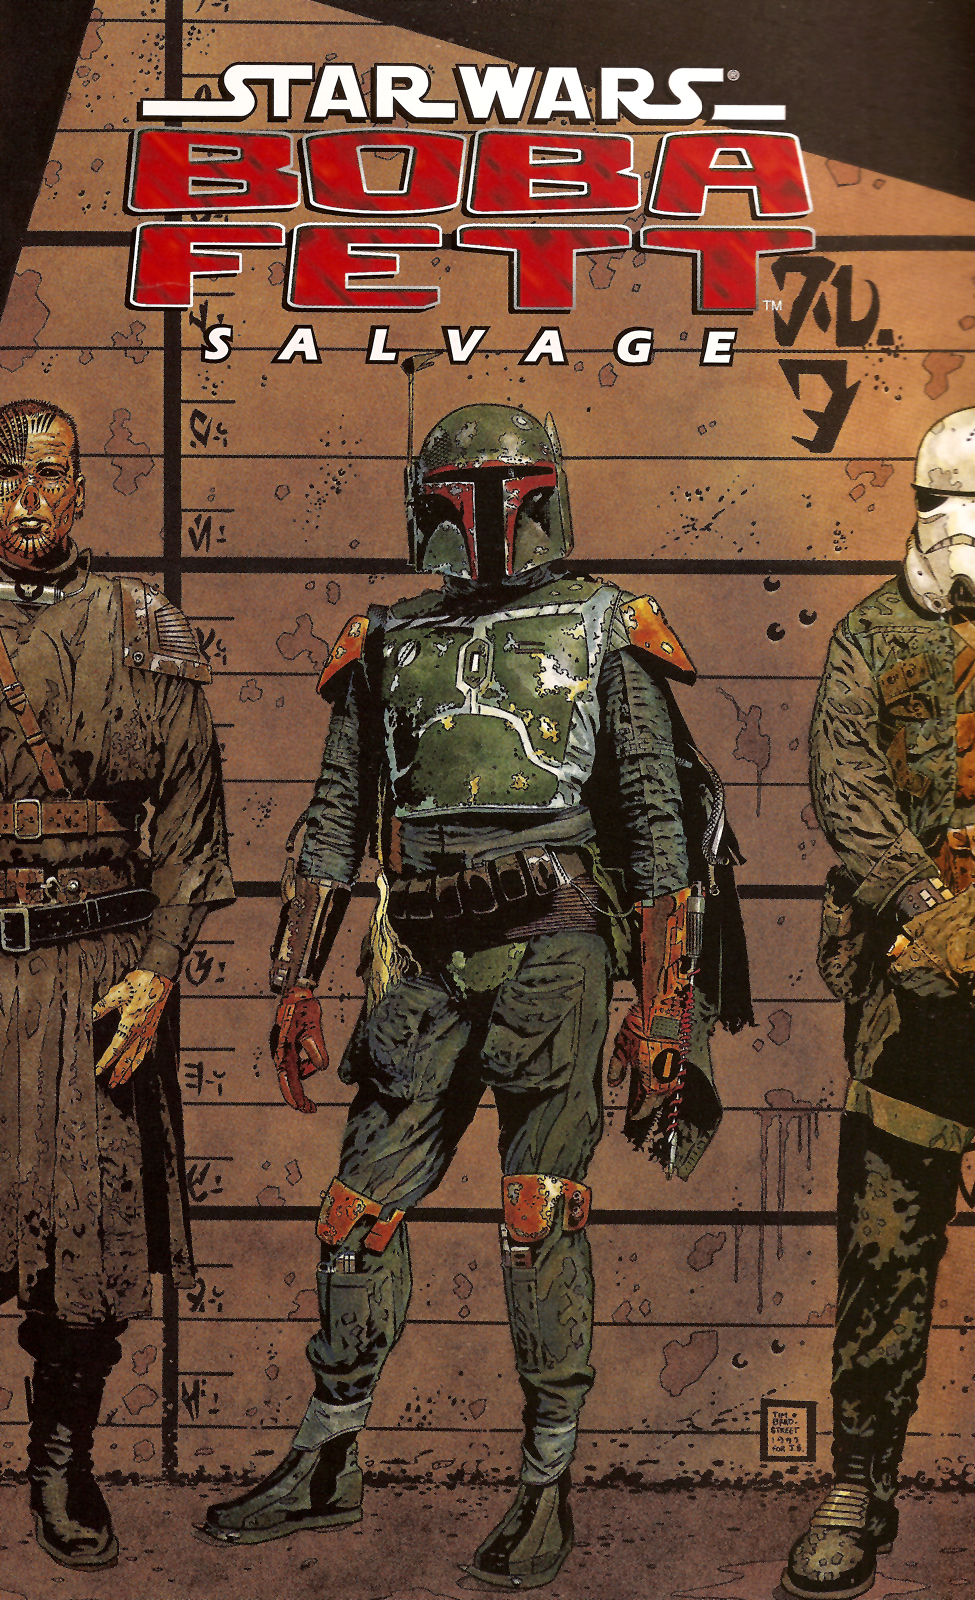 Star Wars Boba Fett: Salvage